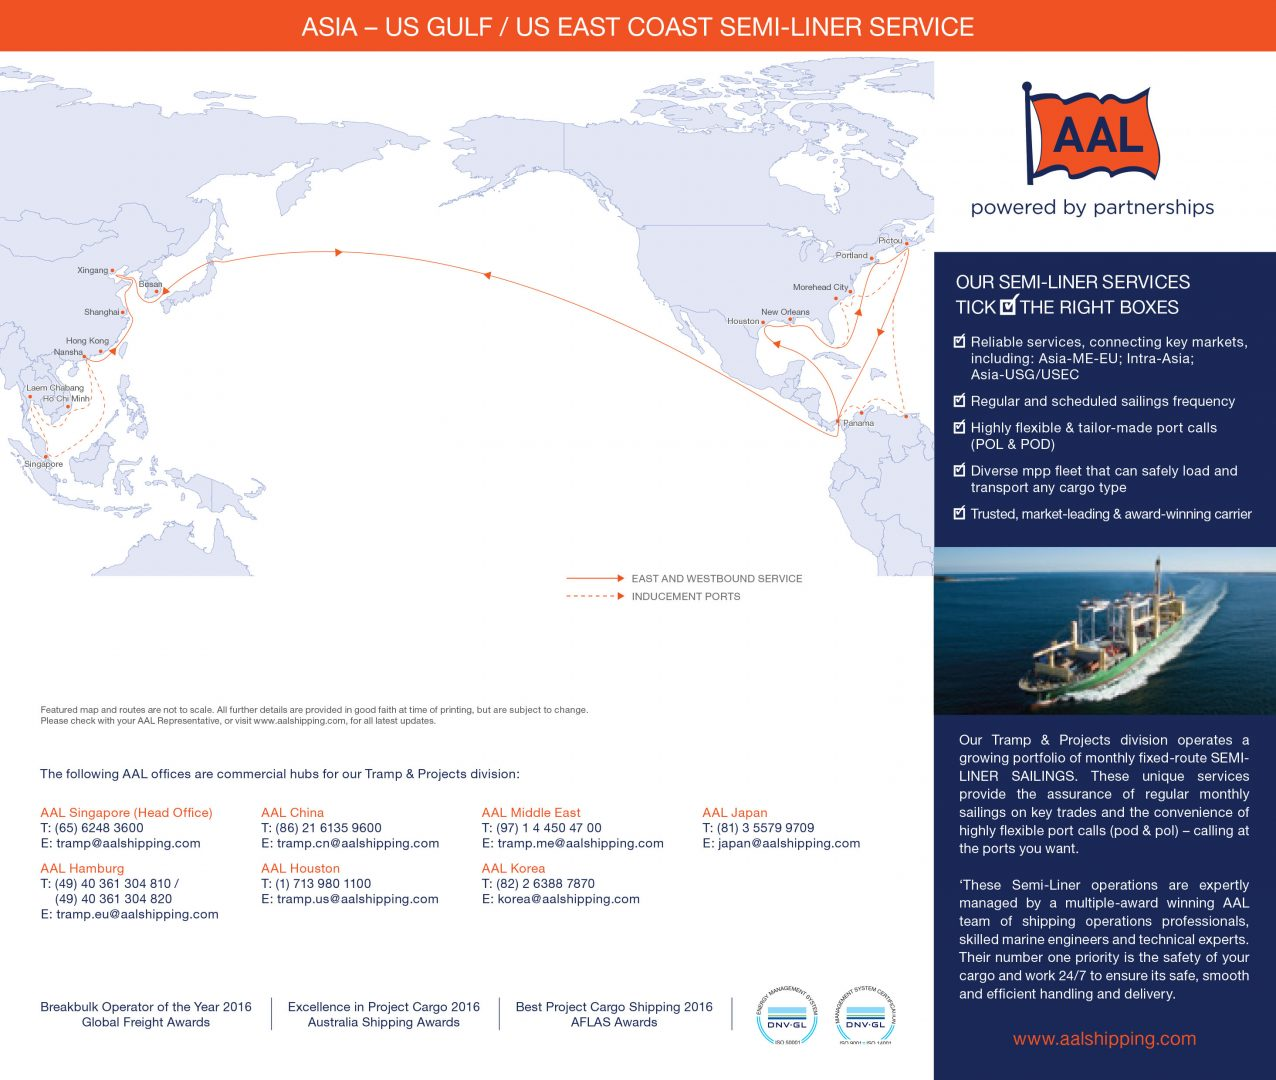 Asia - US Gulf / US East Coast Semi-Liner Service Route Map